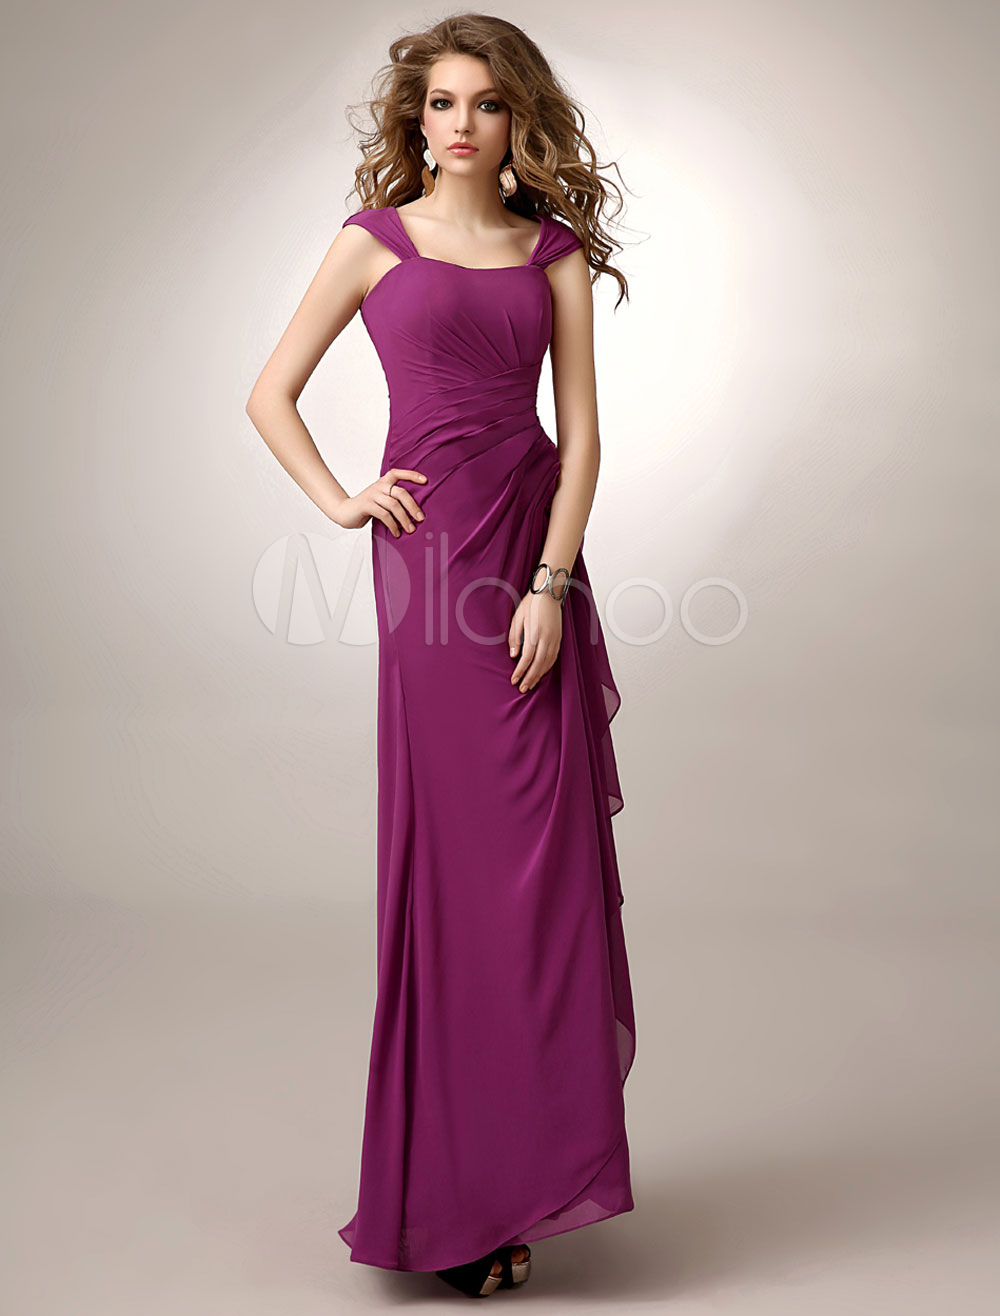 Magenta Mother Of Bride Dress A Line Side Draping Chiffon Floor Length Straps Wedding Party Dress